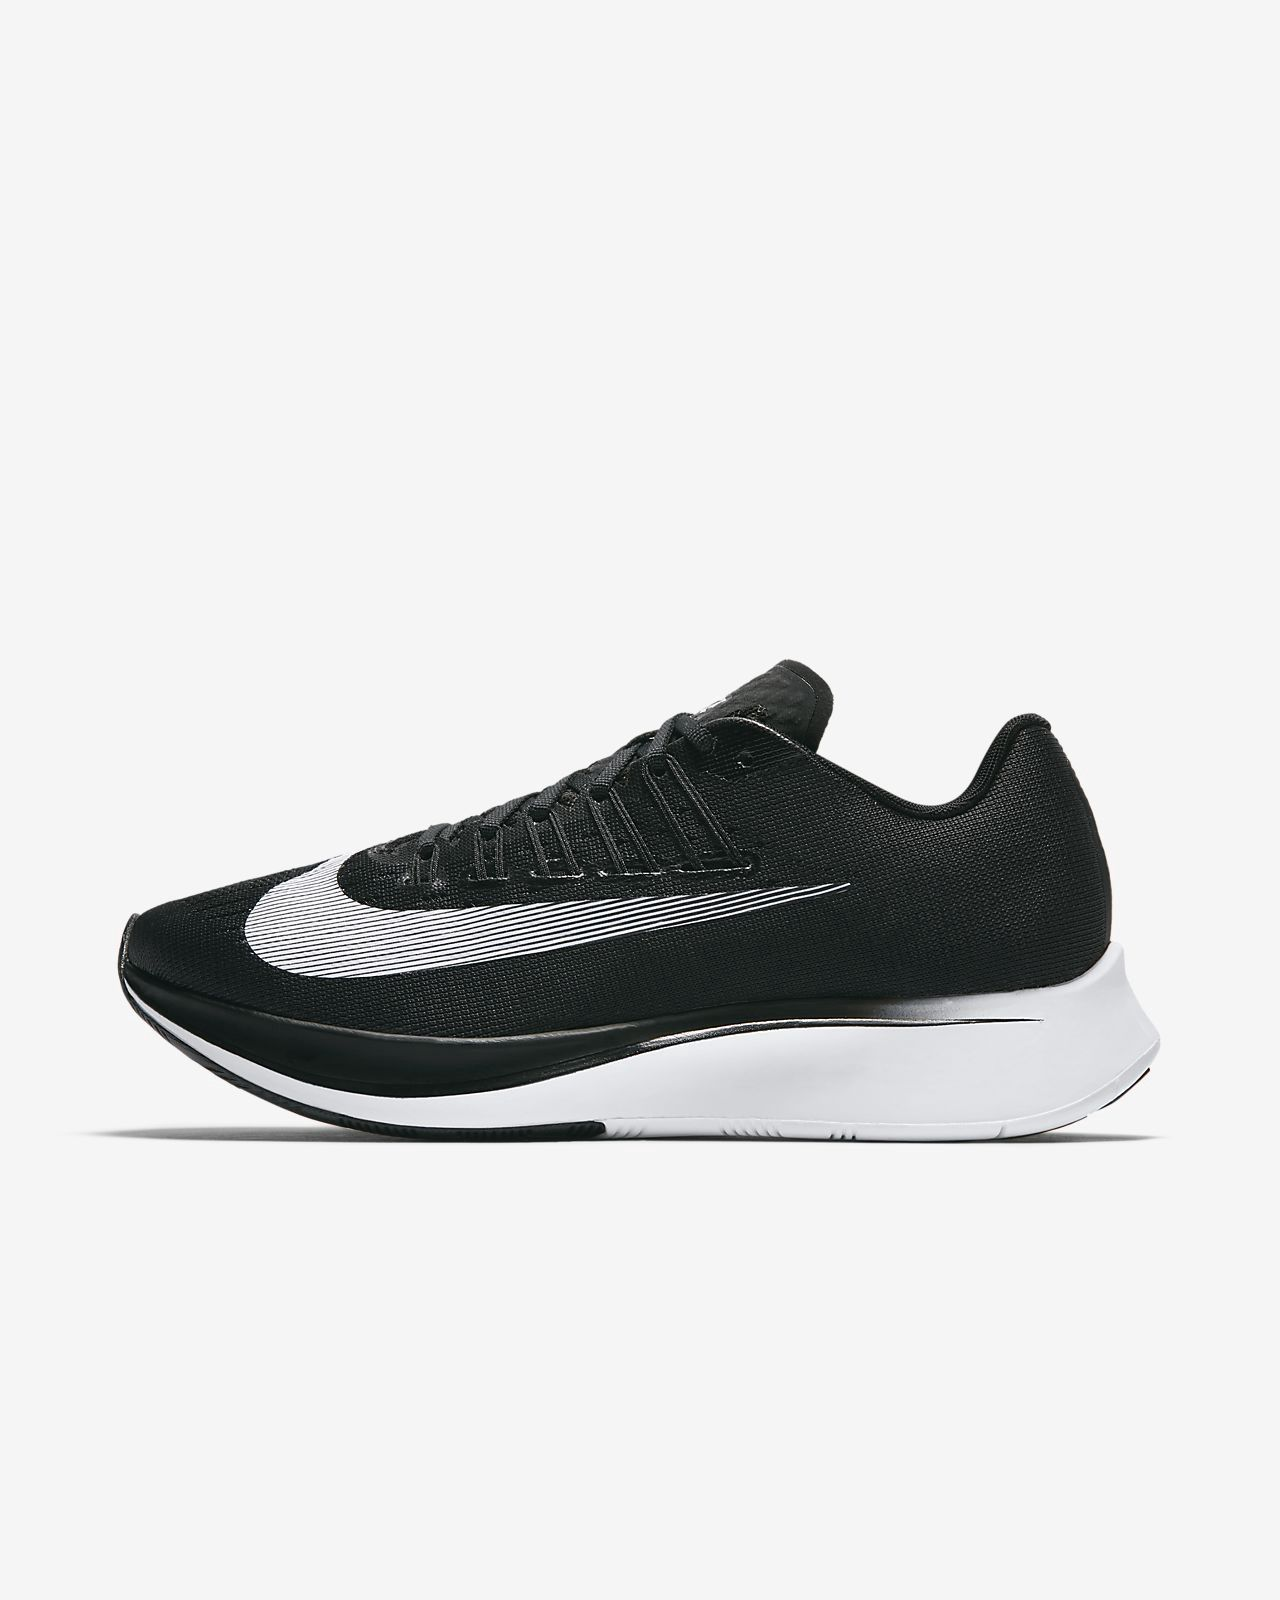 new concept f5e41 1237c Nike Zoom Fly Women s Running Shoe - 11.5